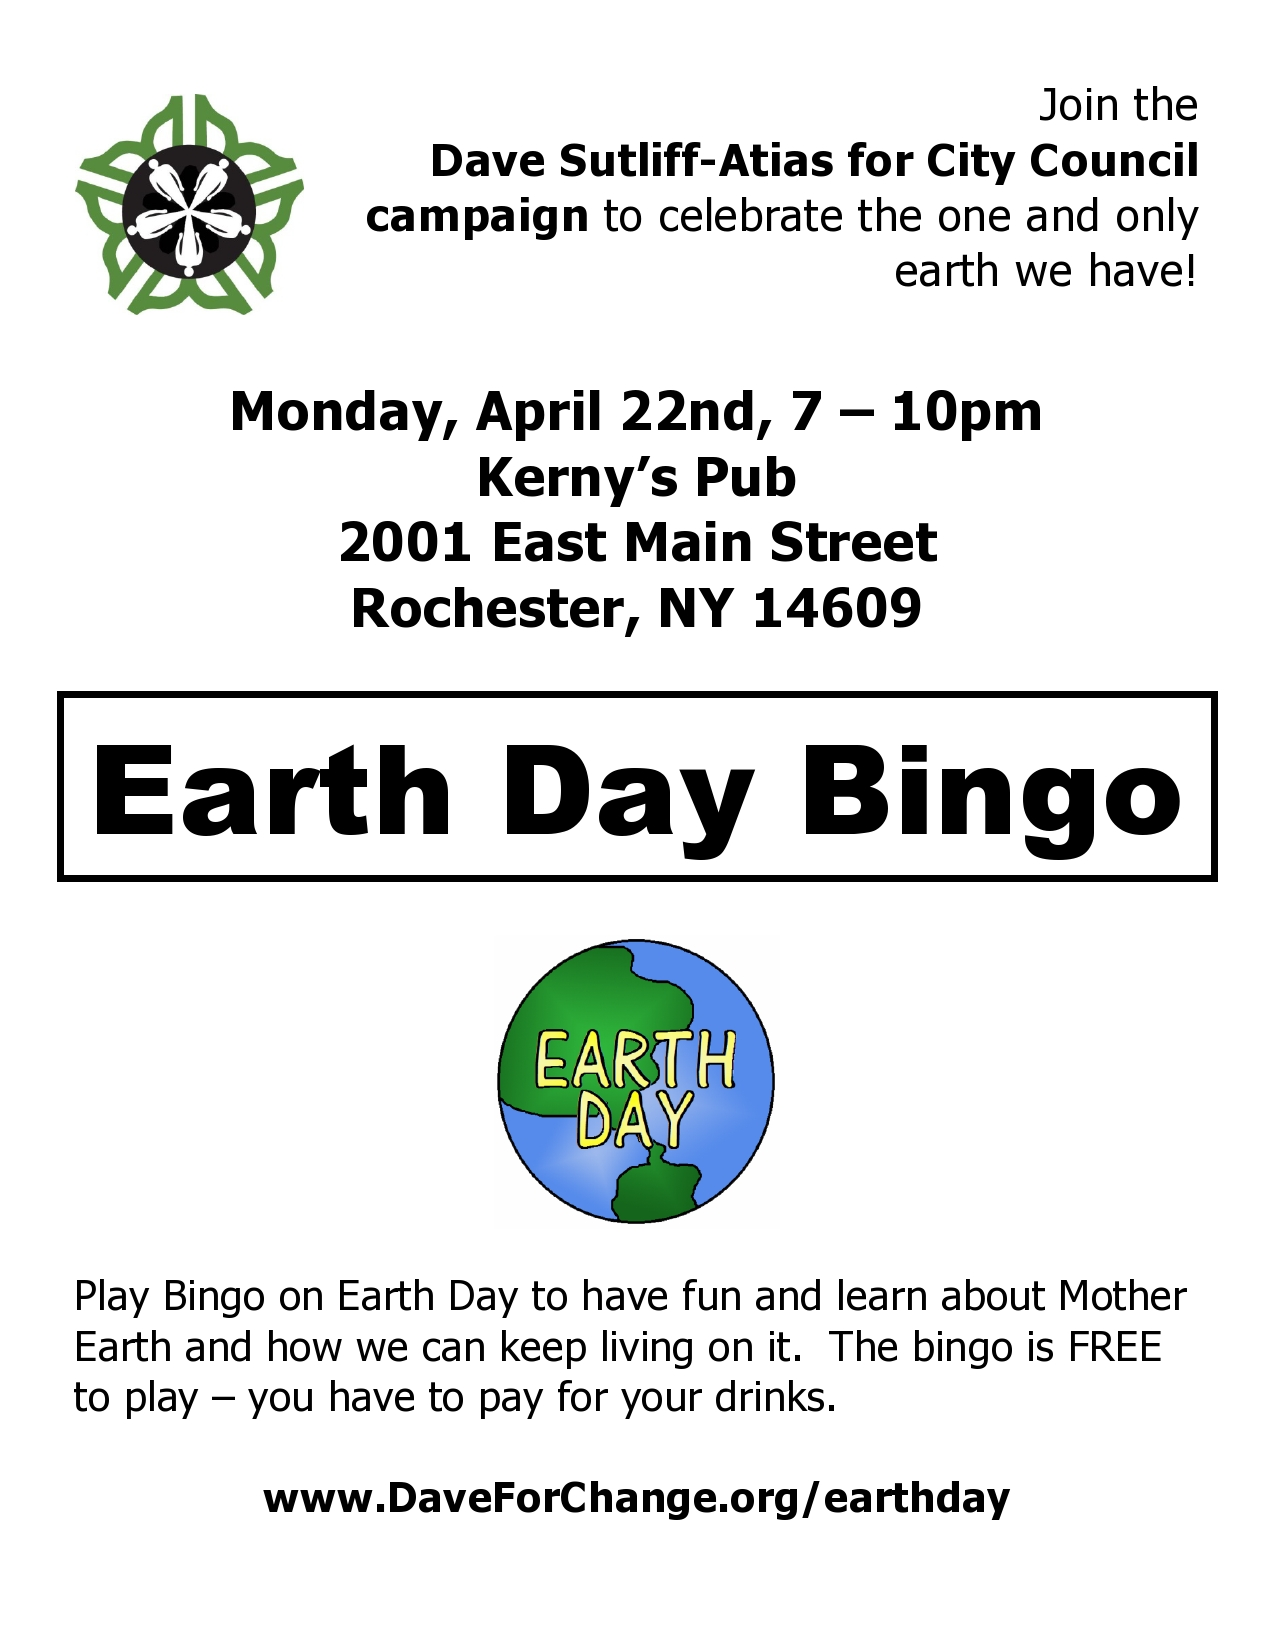 Flyer for Earth Day Bingo on April 22nd